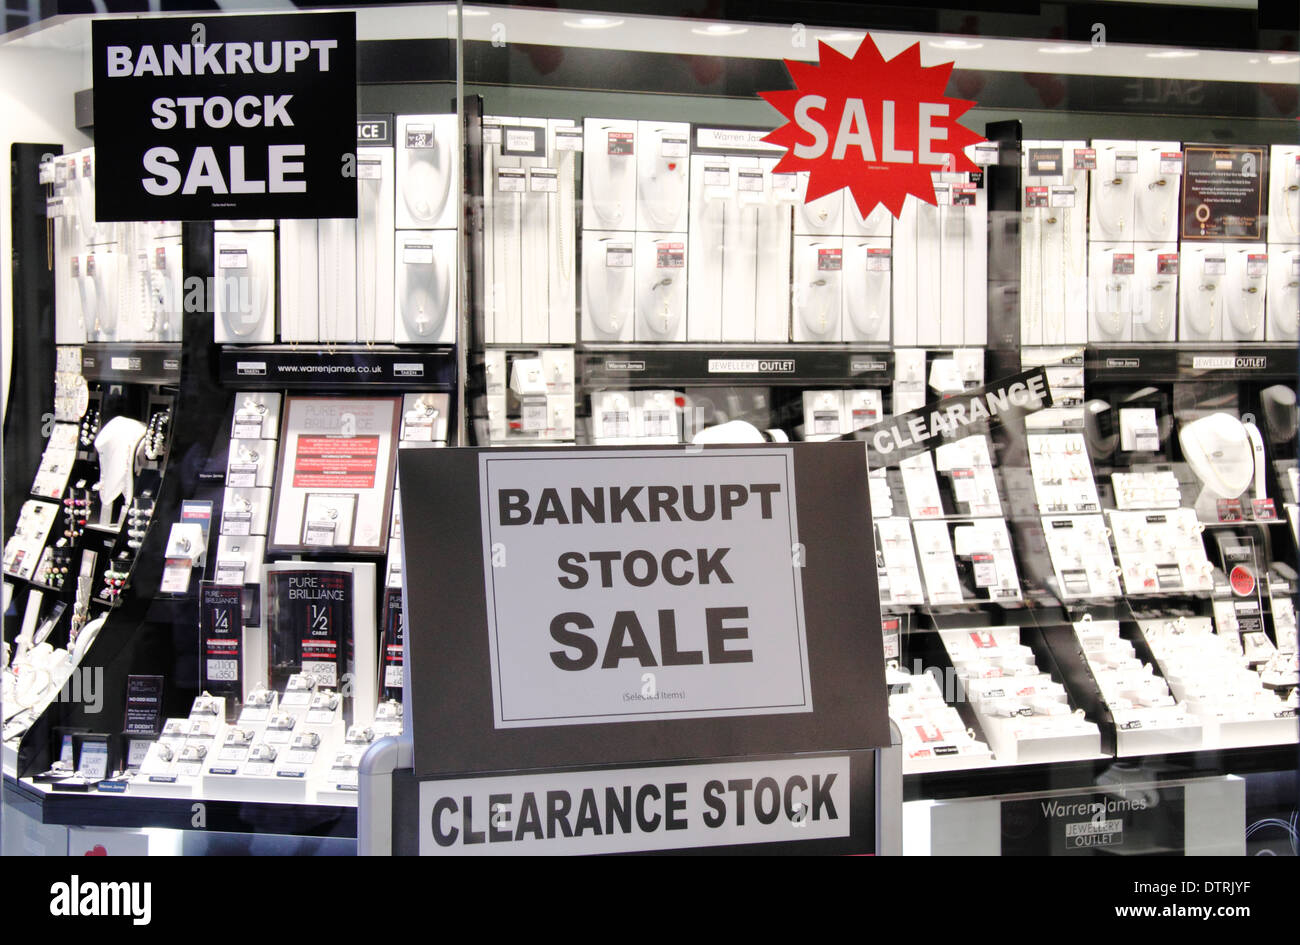 Bankrupt stock sale and clearance stock sale advertisement in window of a jewellers shop in England, UK - Stock Image